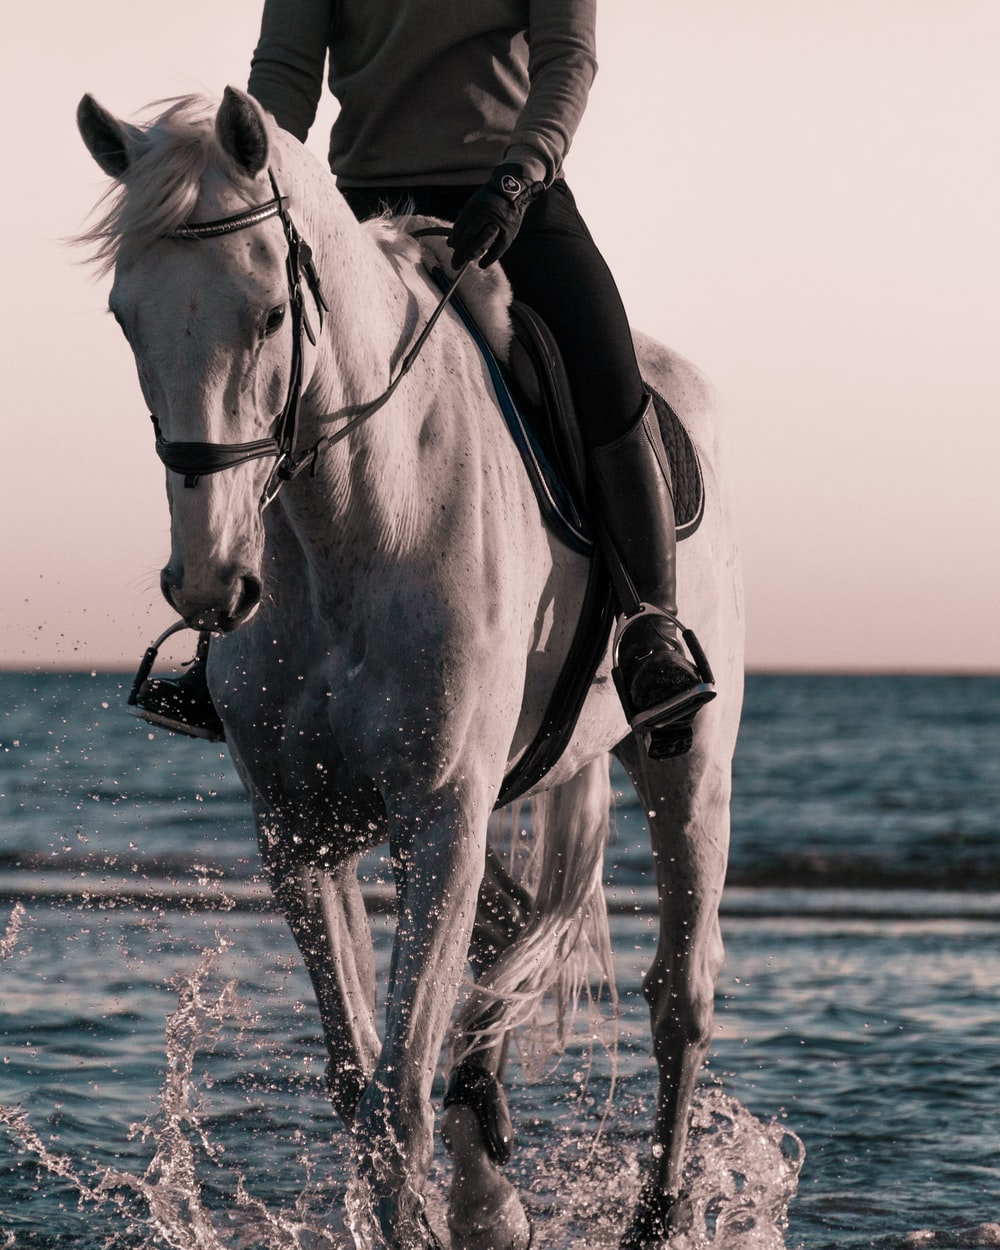 person riding on white horse on beach during daytime